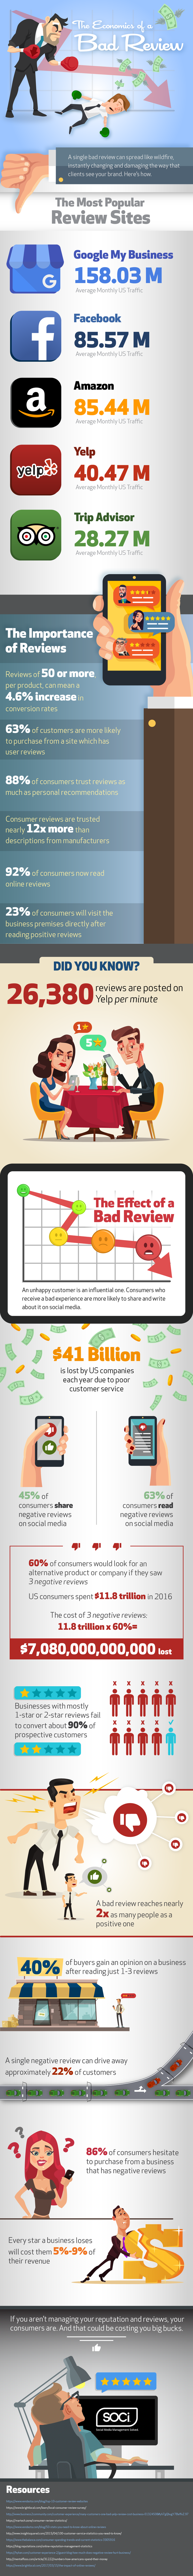 The-Economics-of-a-Bad-Review-infographic.png